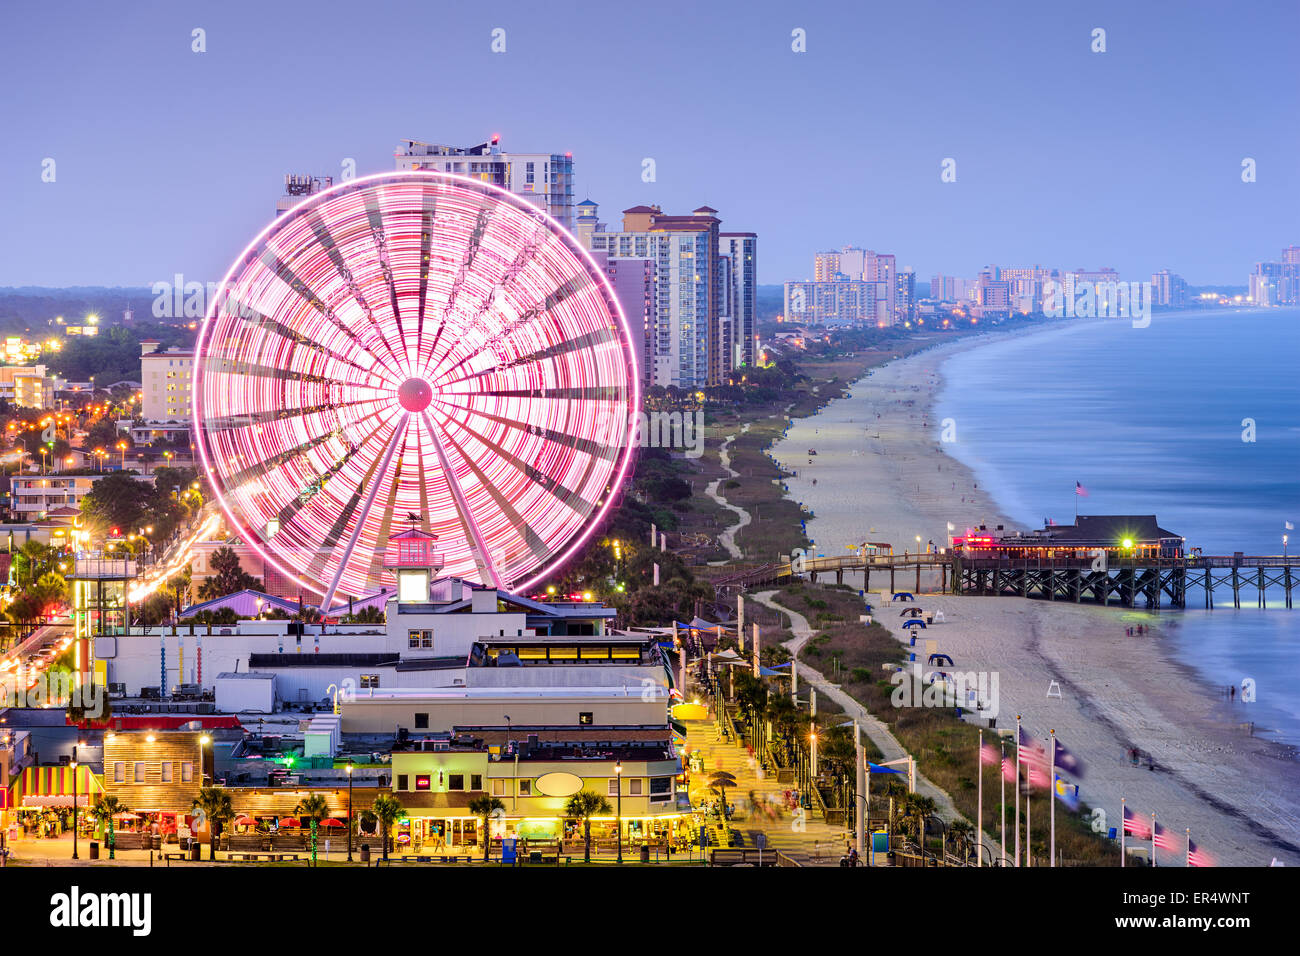 Myrtle Beach, South Carolina, USA city skyline. - Stock Image